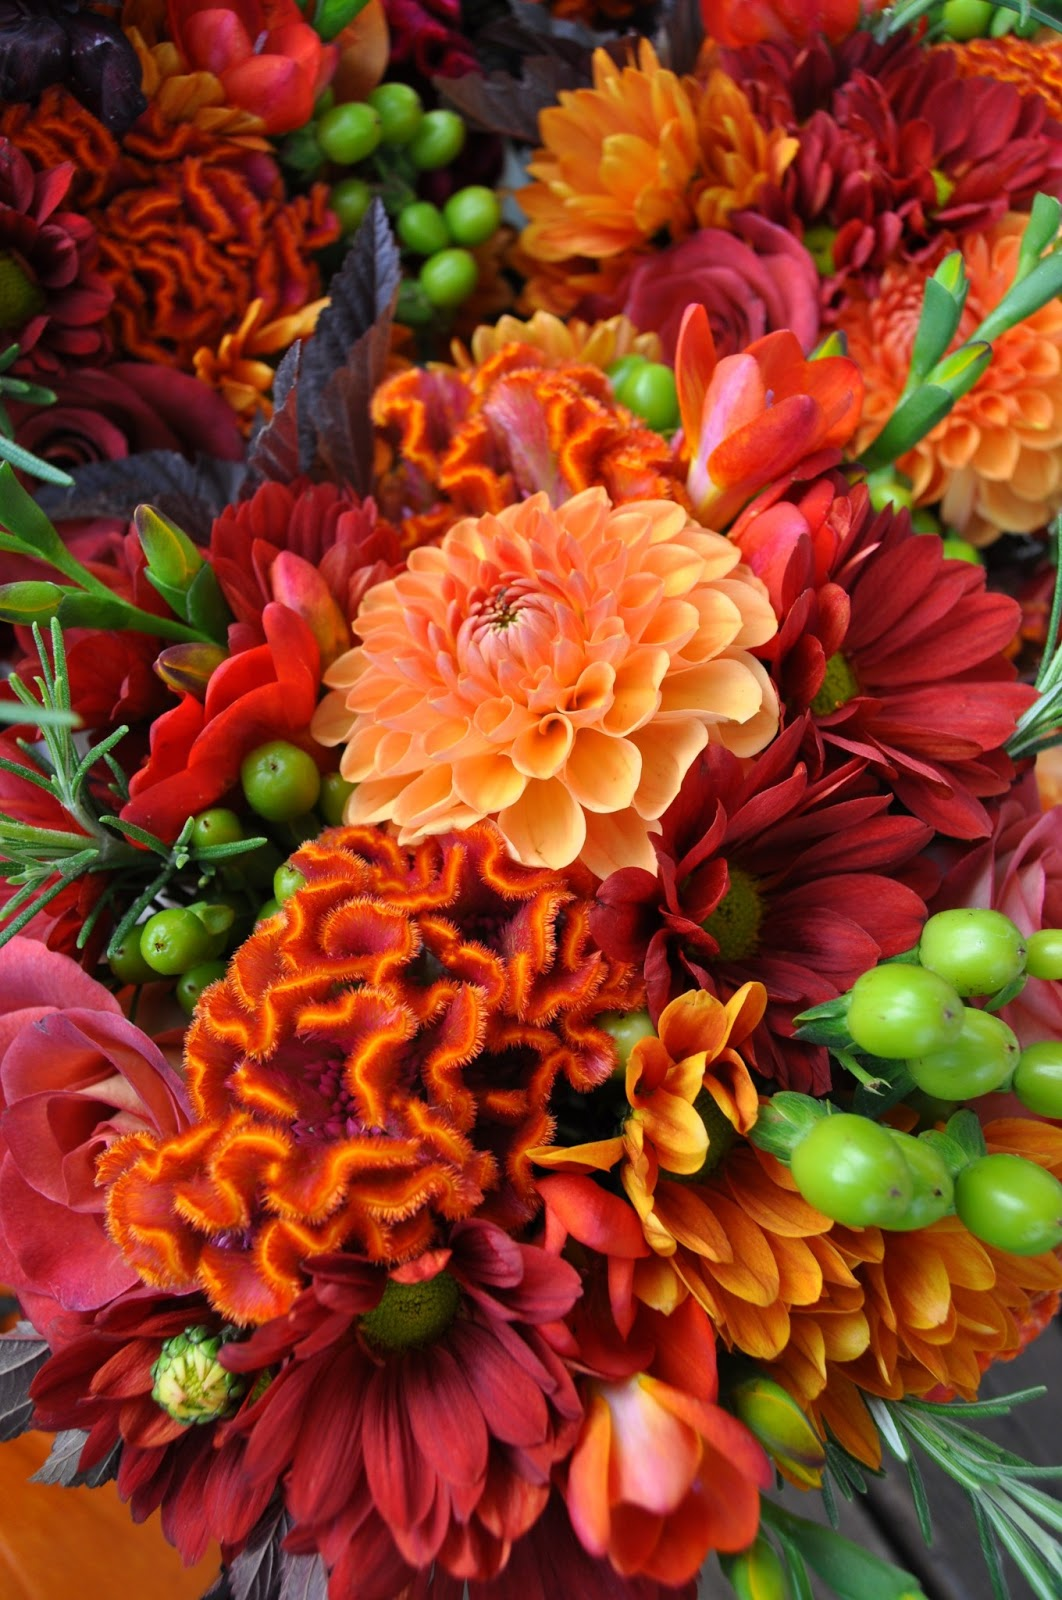 Top 5 flowers in season for your fall wedding for Popular fall flowers